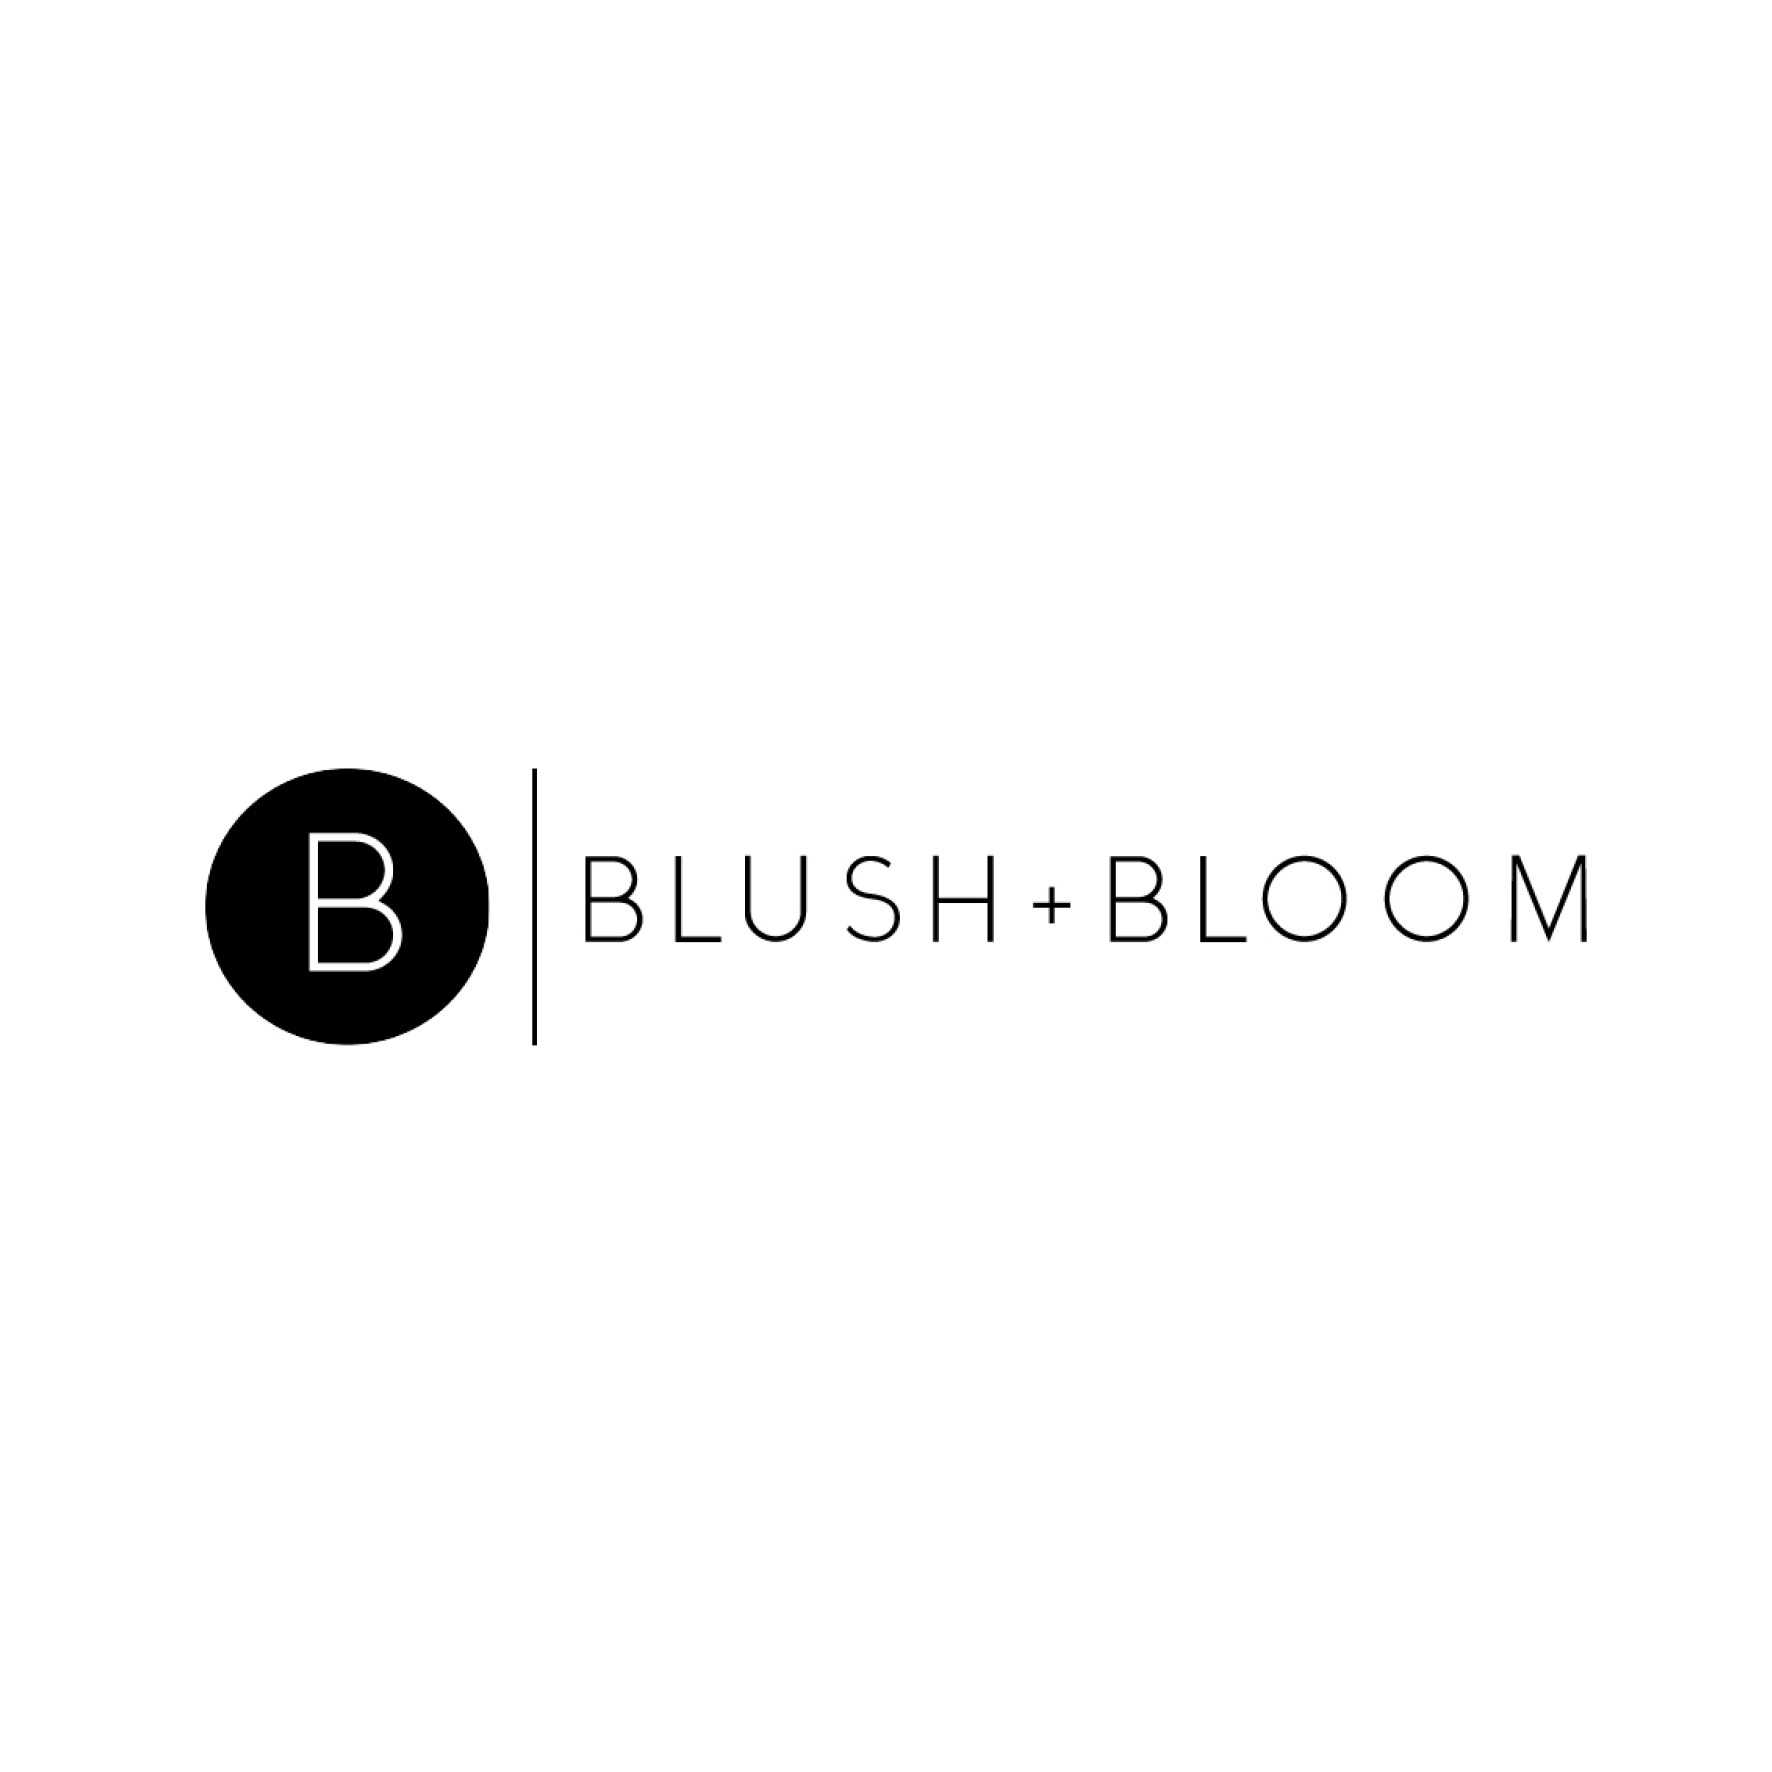 Exhibitor Logo - Blush + Bloom.jpg